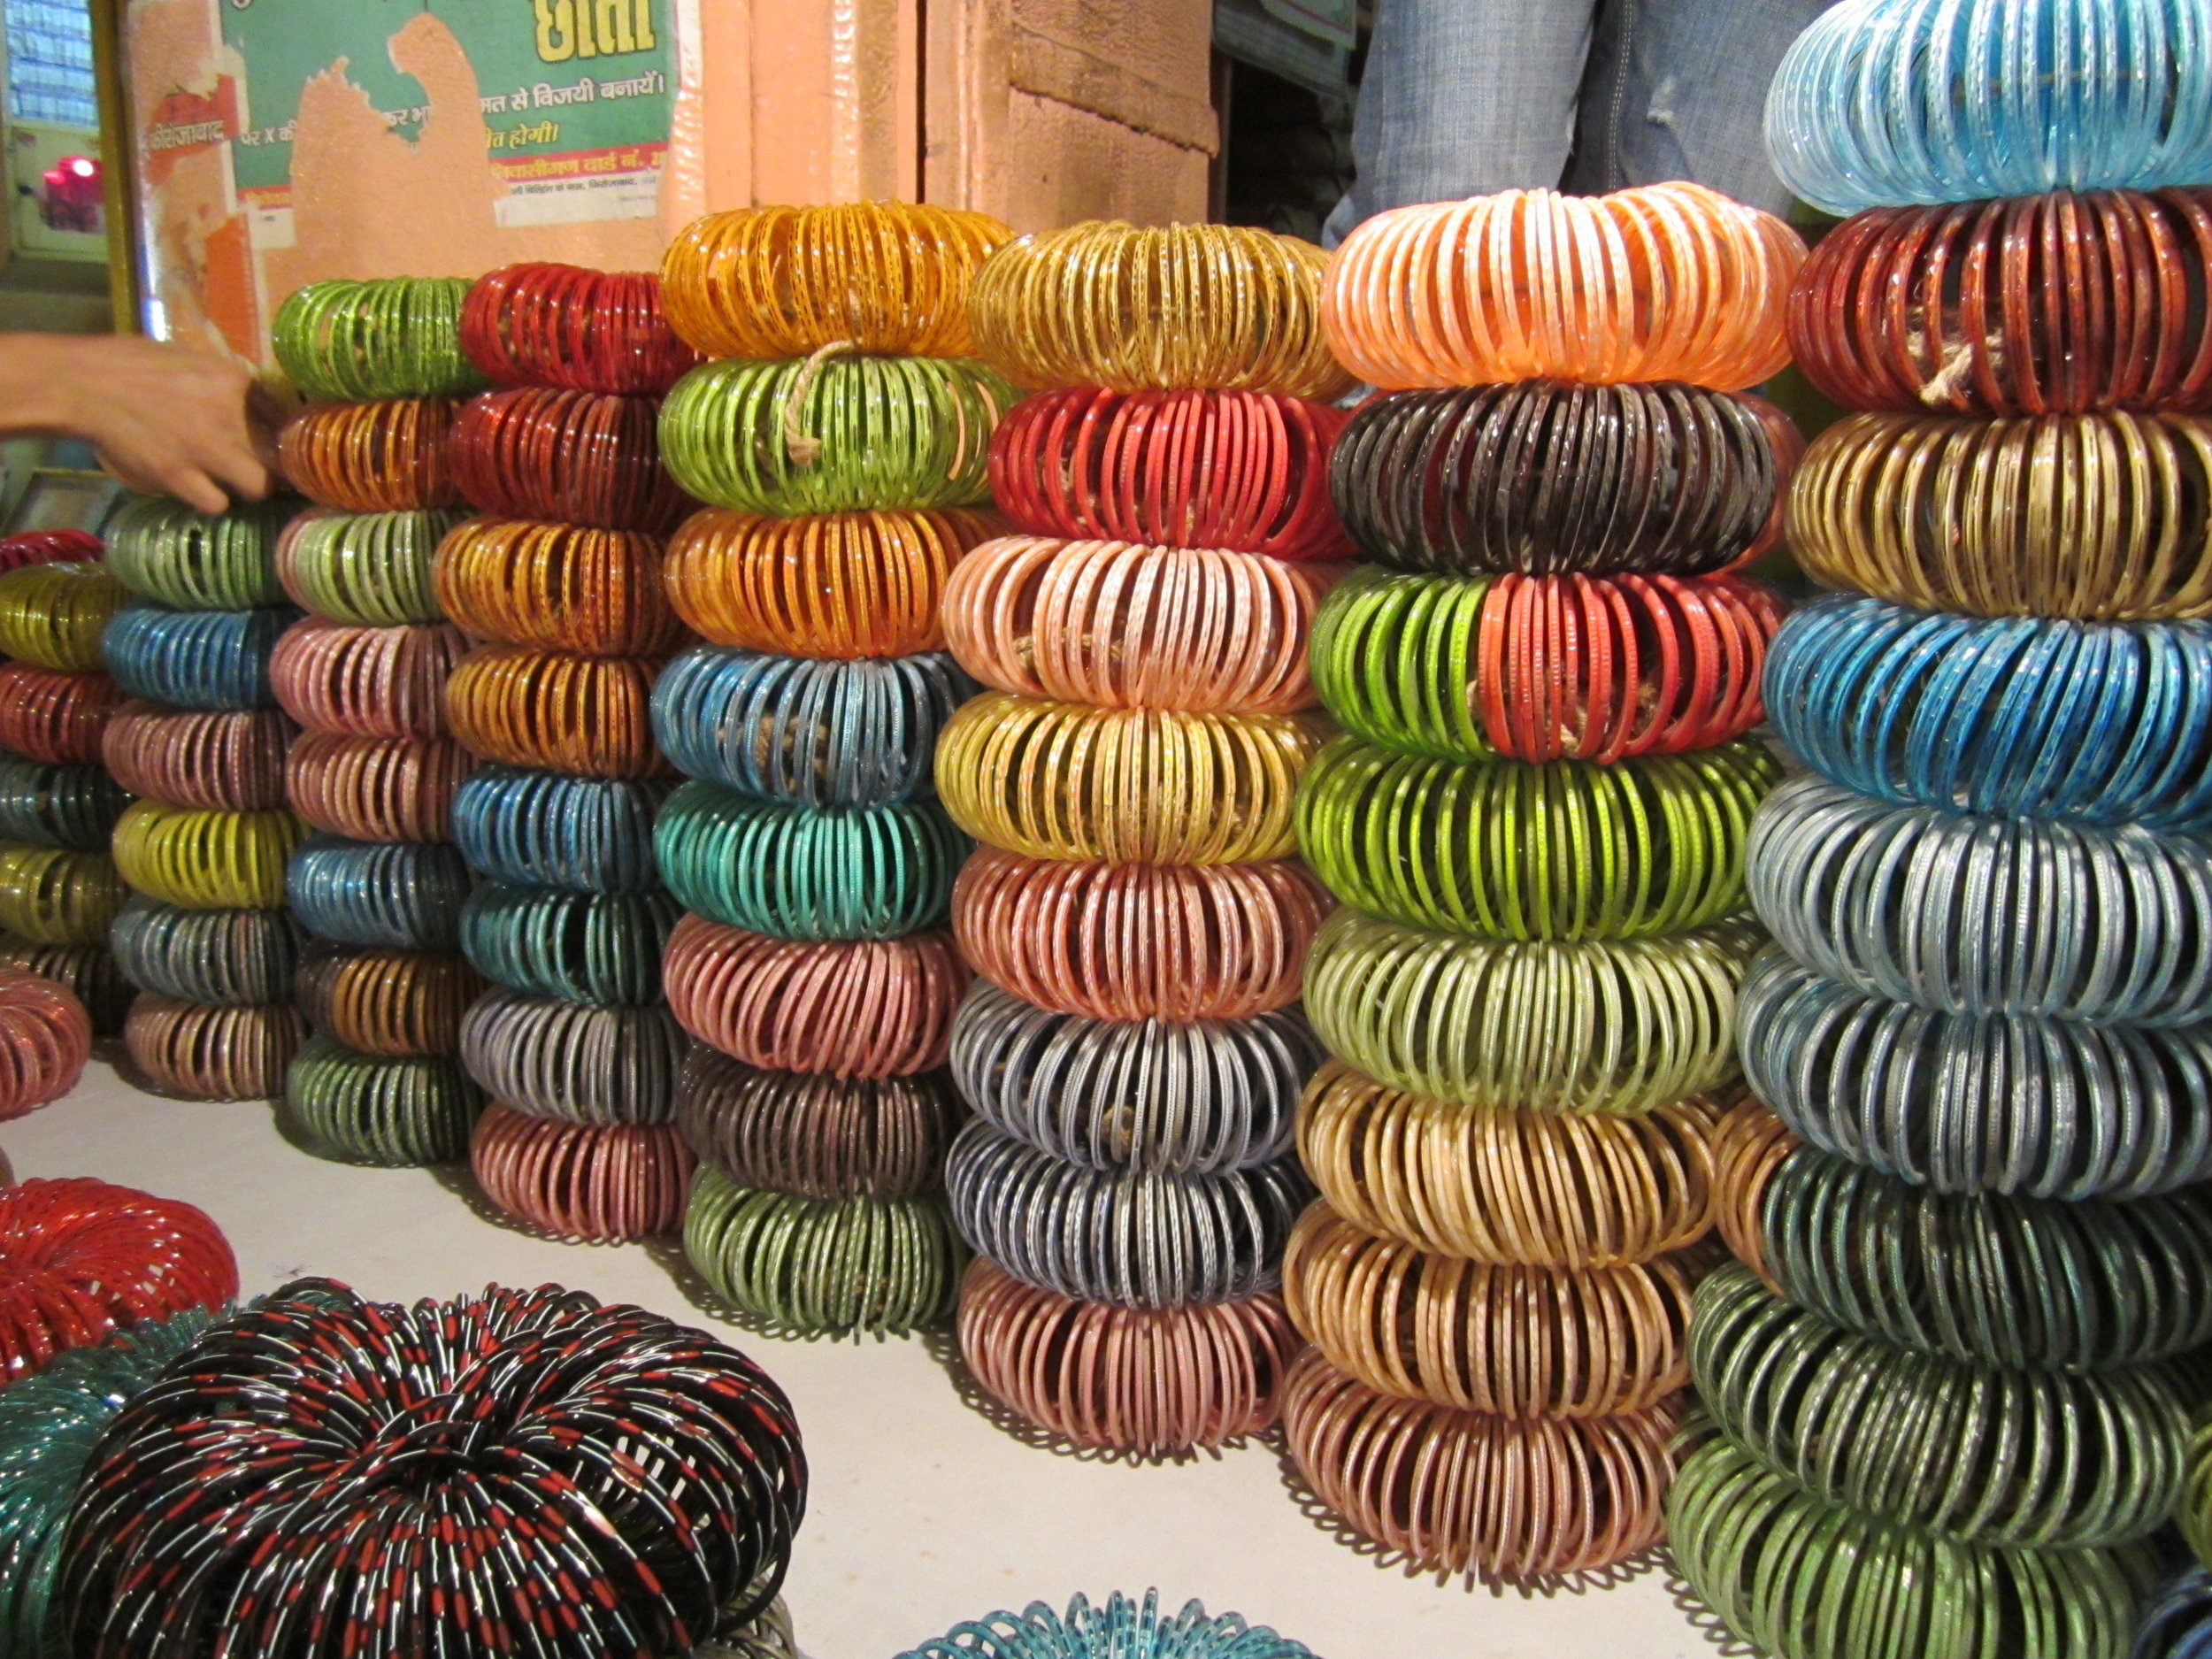 Bundles of bangles at the wholesale market in Firozabad, India, 2012. Photo: Stine Bidstrup